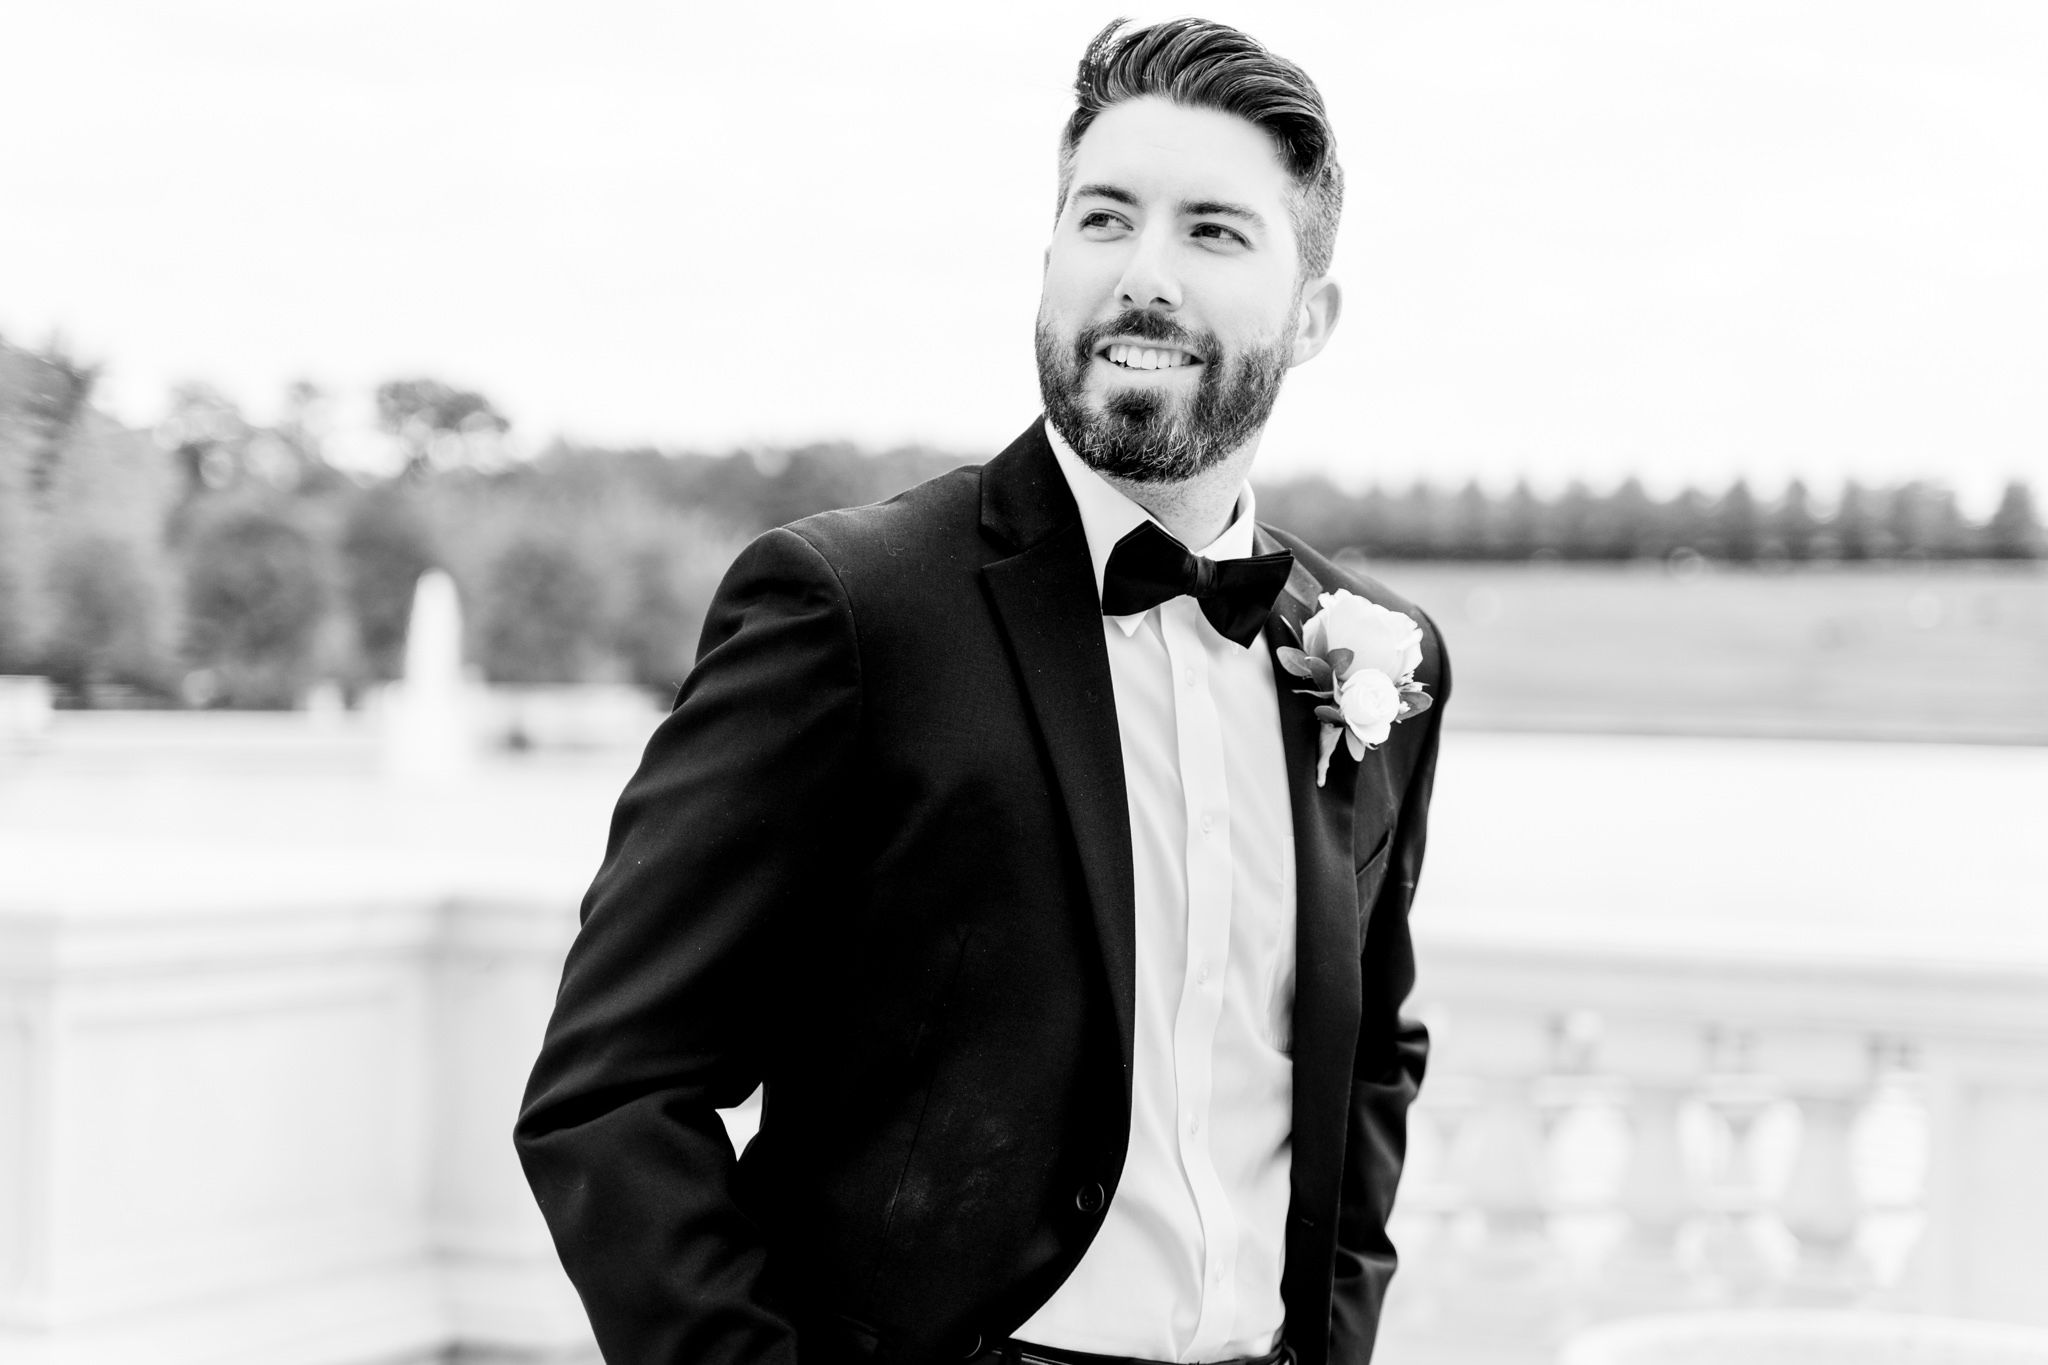 brunette groom with beard in black suit and bowtie smiles off to the side for St. Louis fall wedding